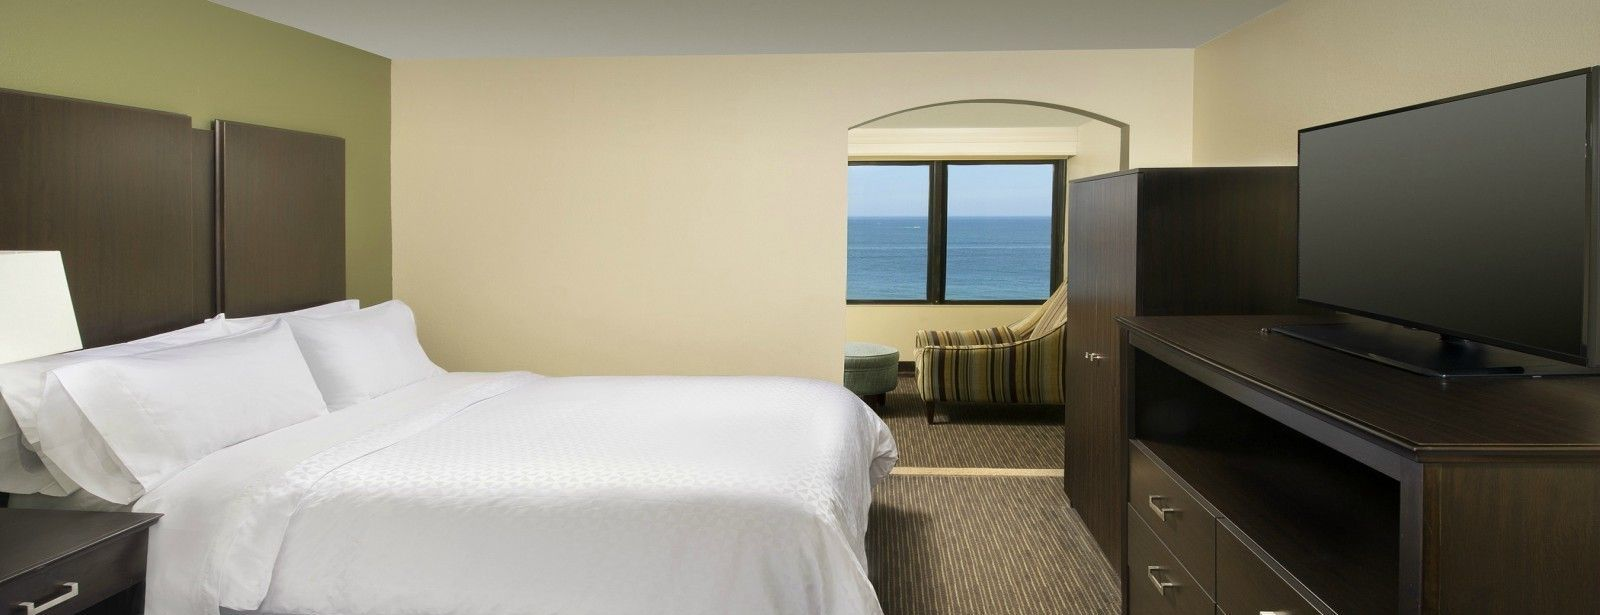 Virginia Beach Accommodations - Queen Suite